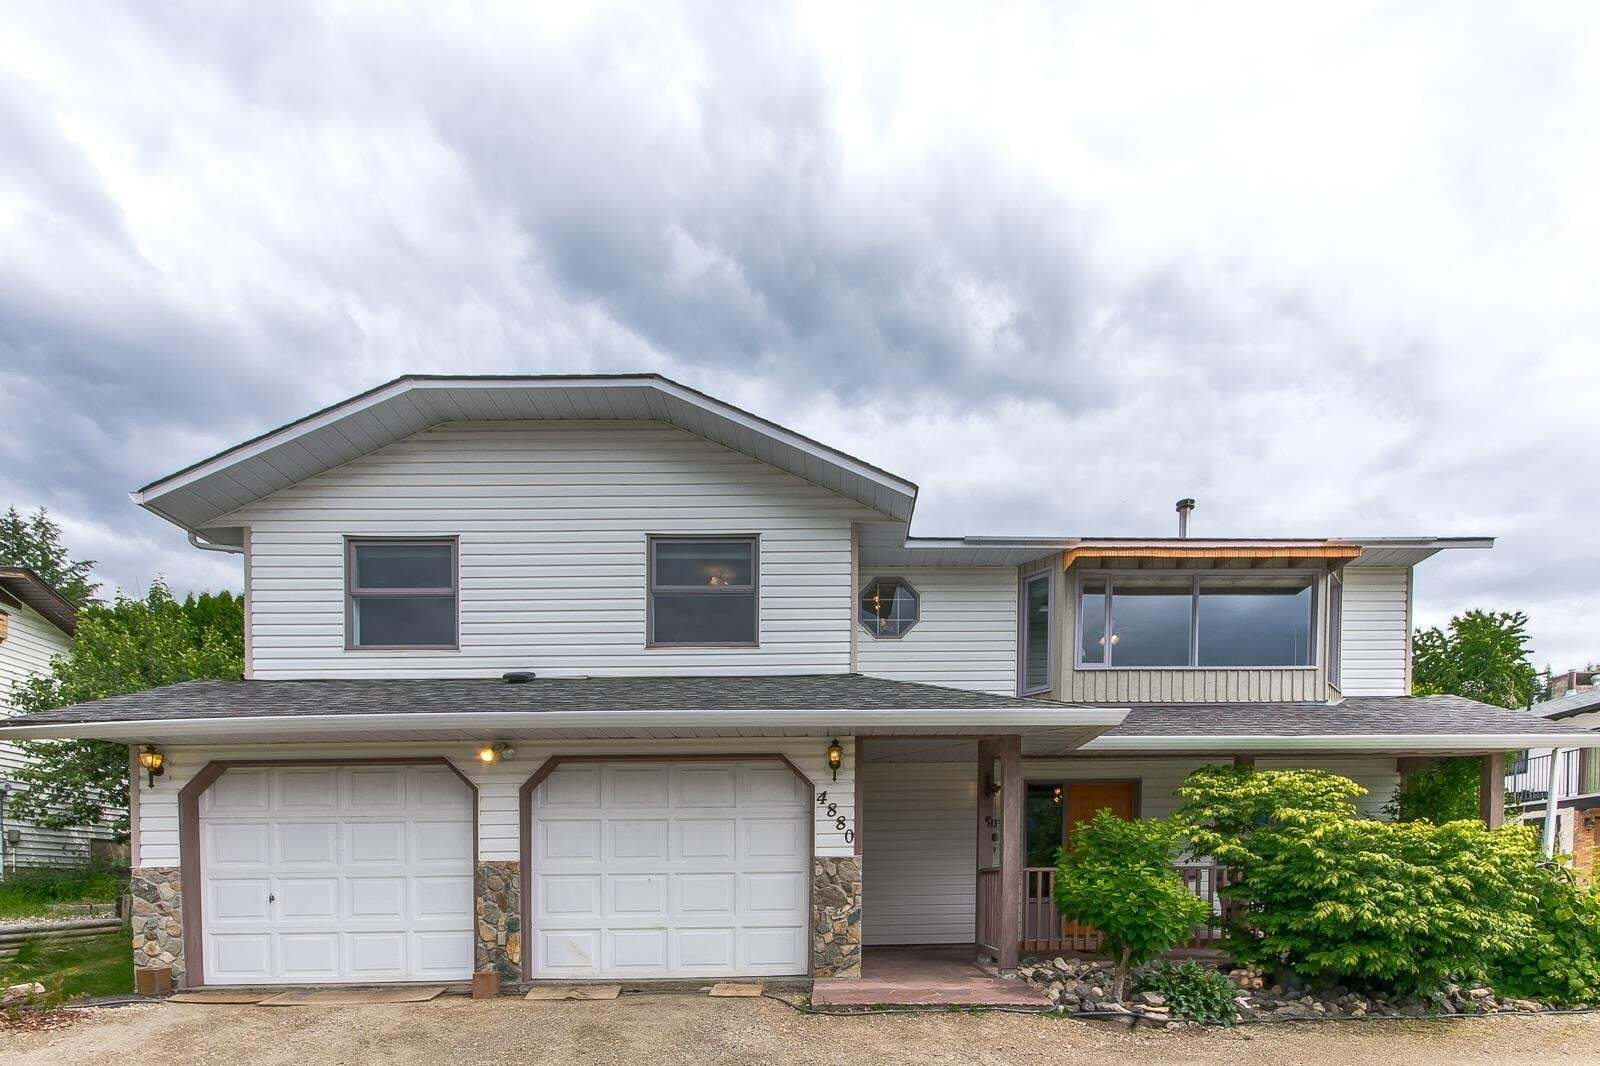 House for sale at 4880 14 St Northeast Salmon Arm British Columbia - MLS: 10207965